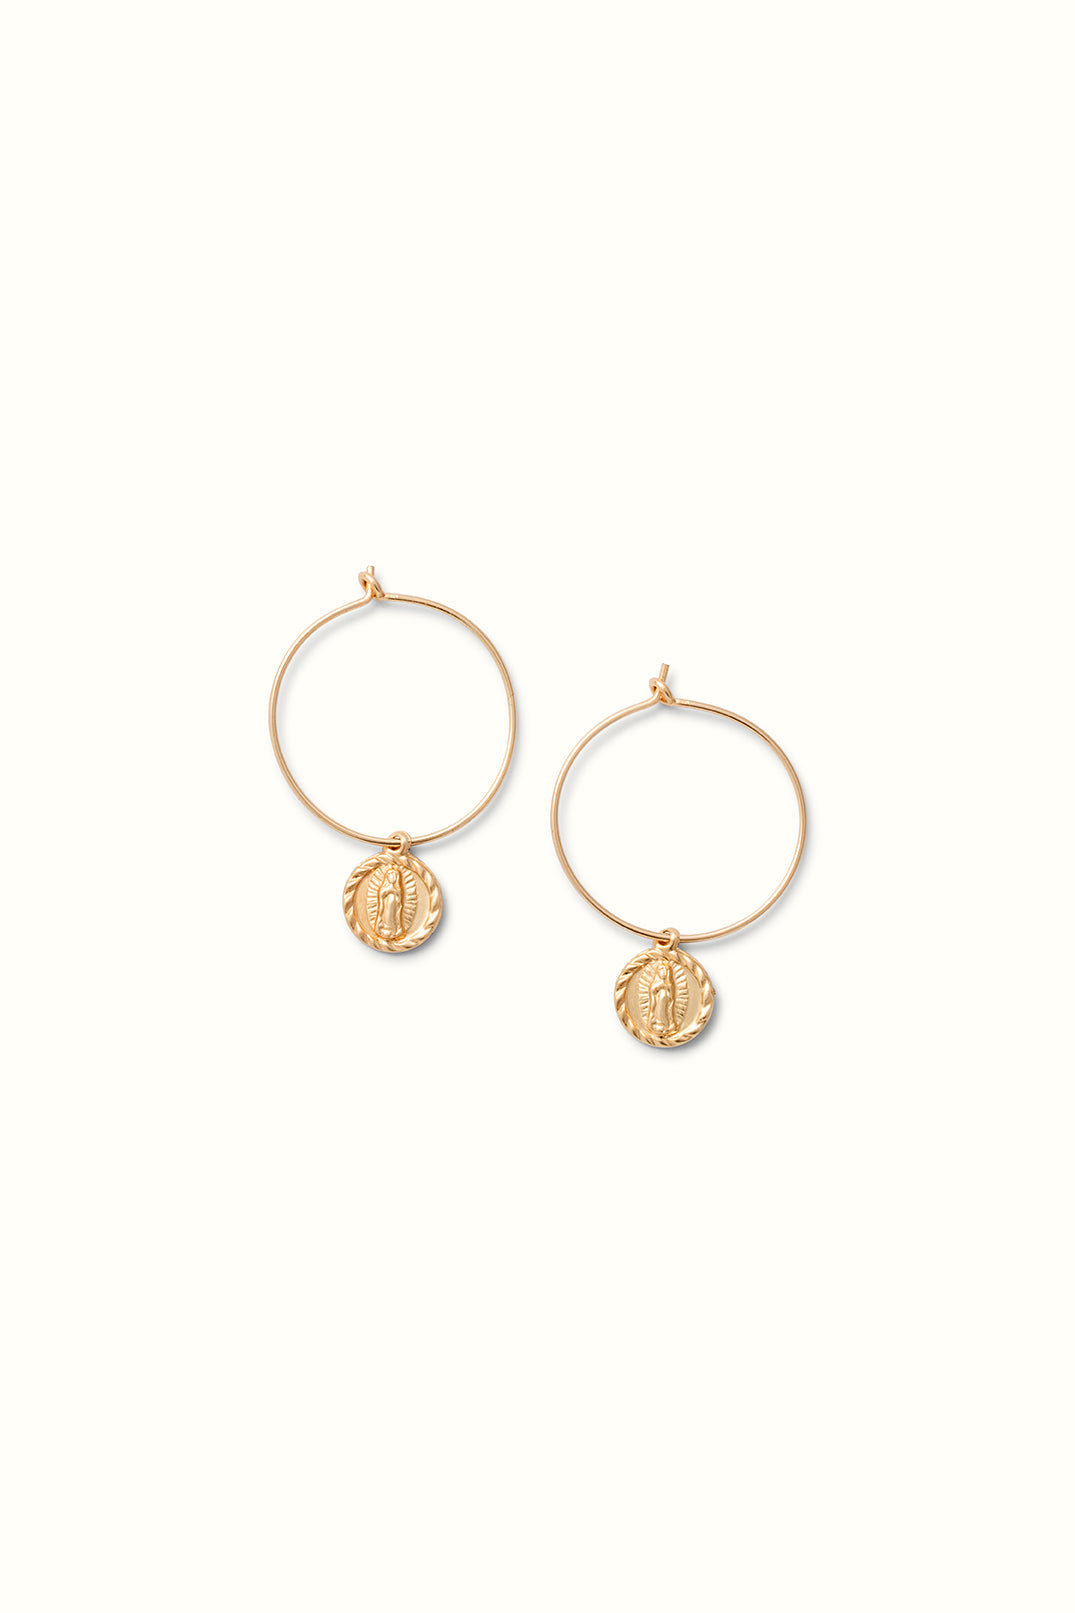 a pair of gold filled wire style earrings with a guadelupe mary round charm lying on a white surface